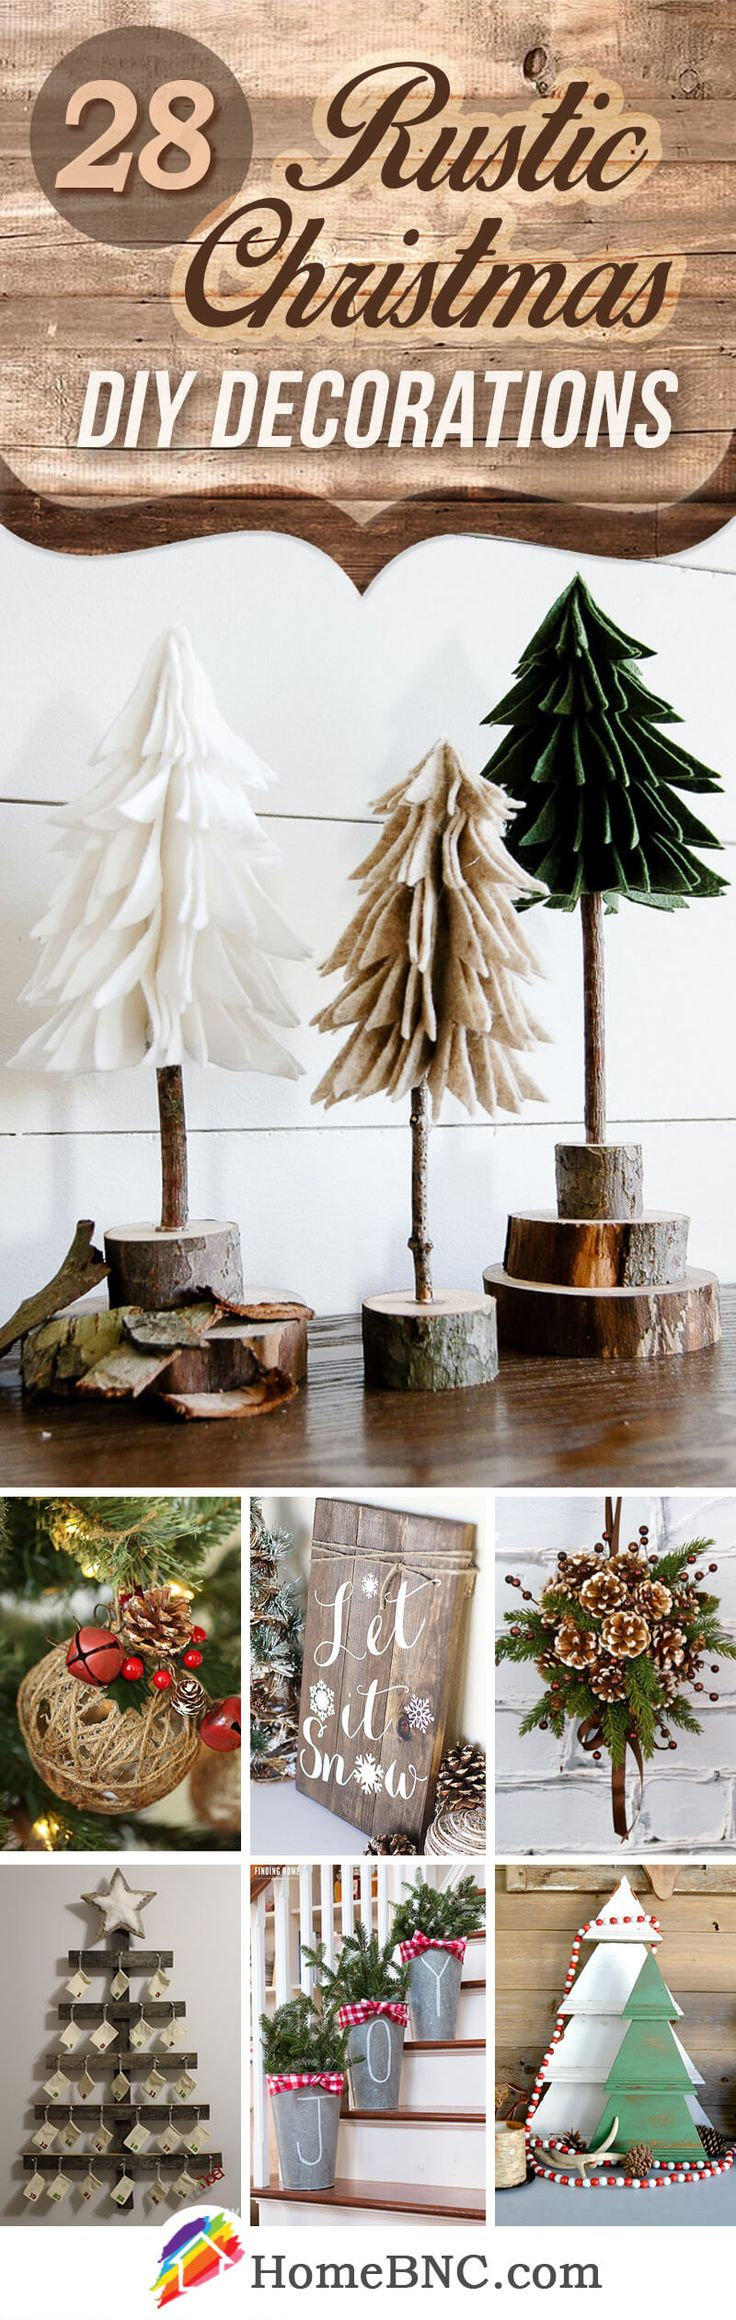 Rustic DIY Christmas Home Decor Ideas